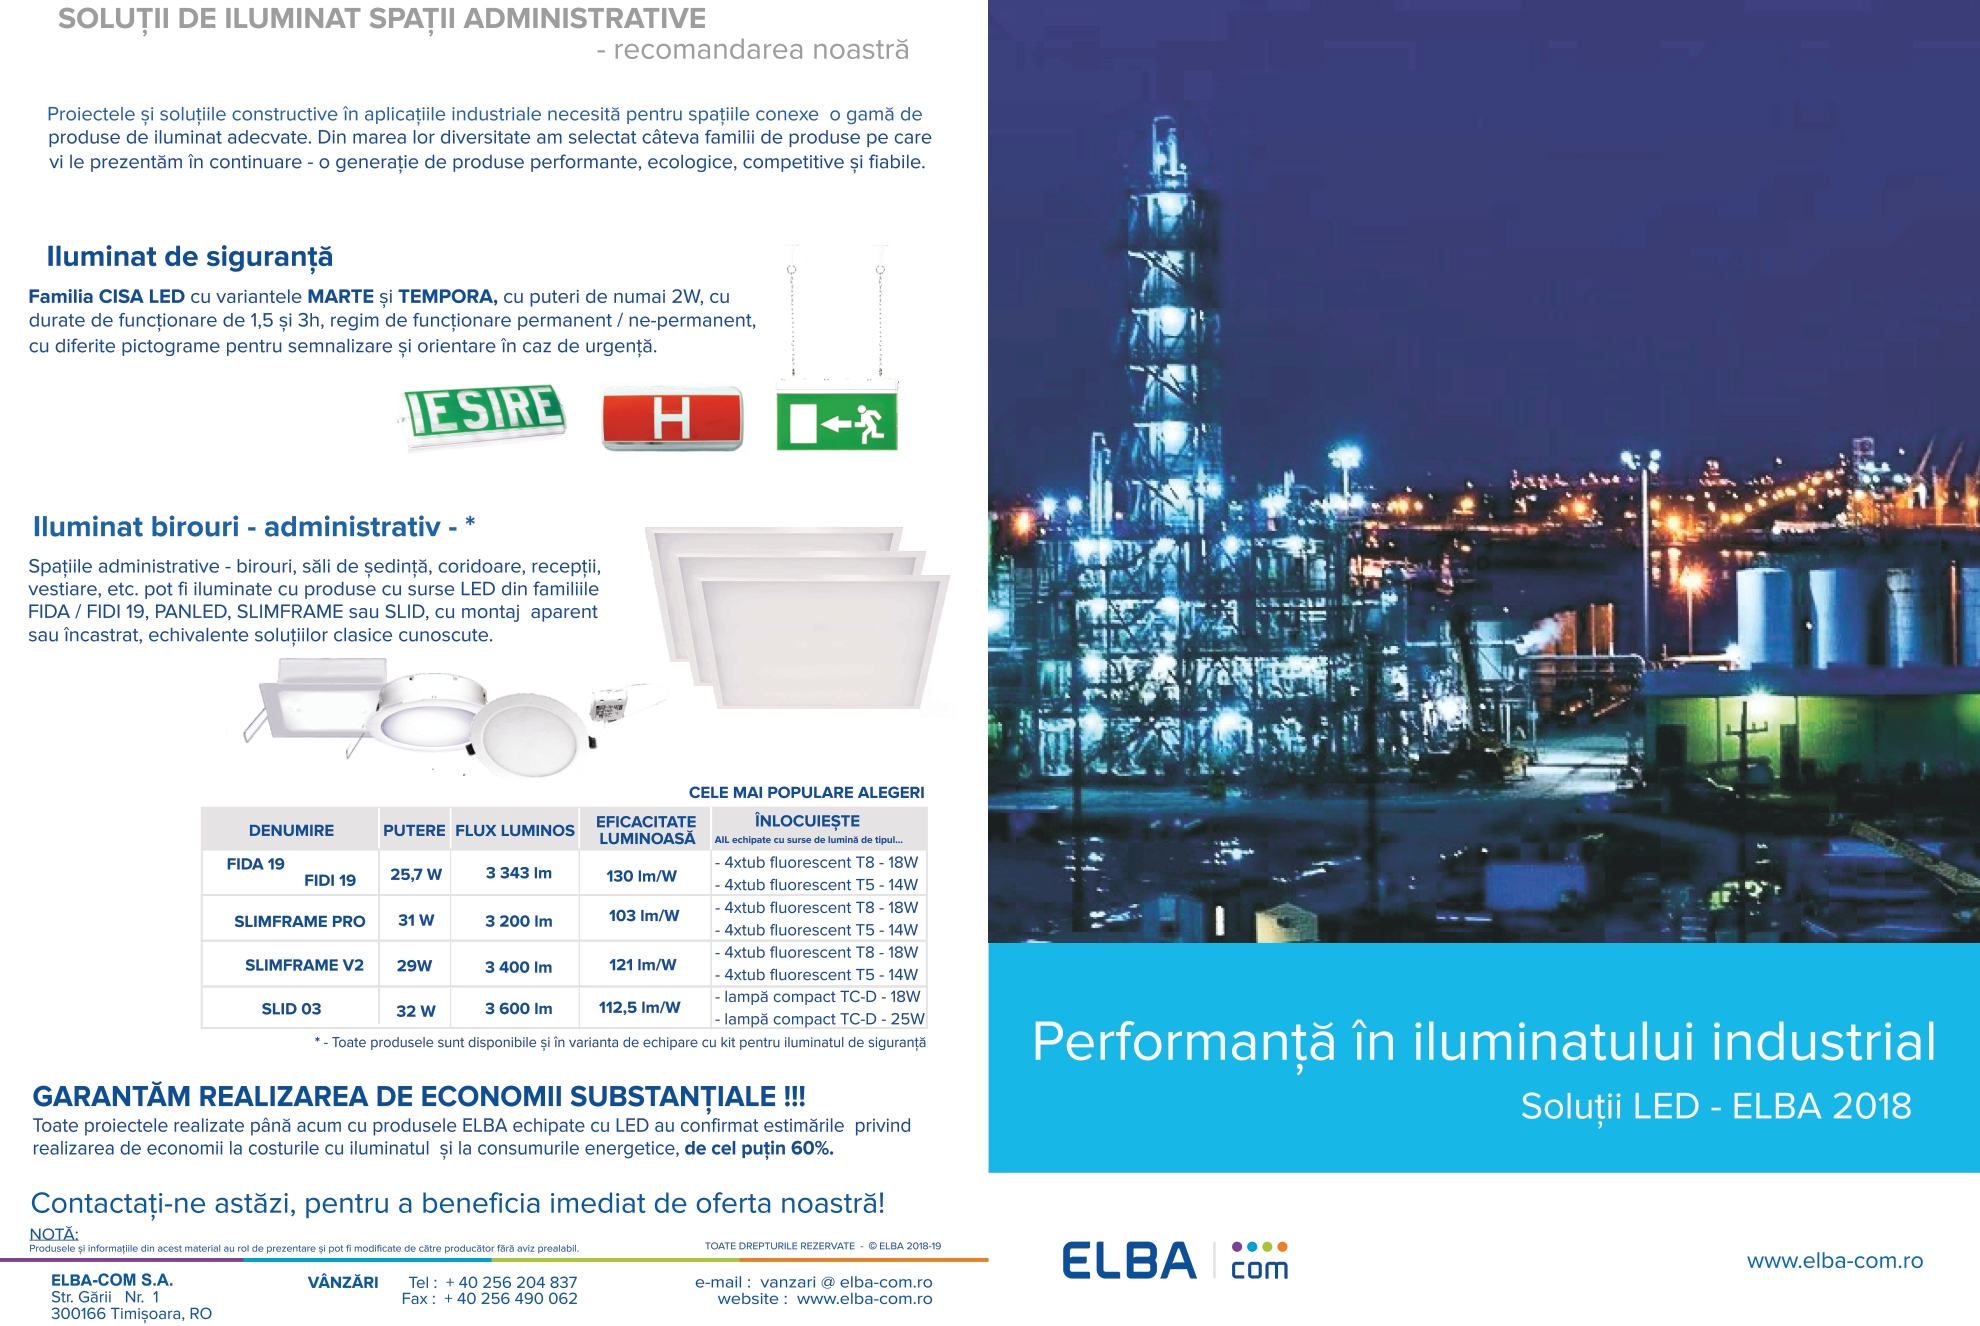 Noua brosura Solutii LED - ELBA 2018 - Performanta in iluminatul industrial